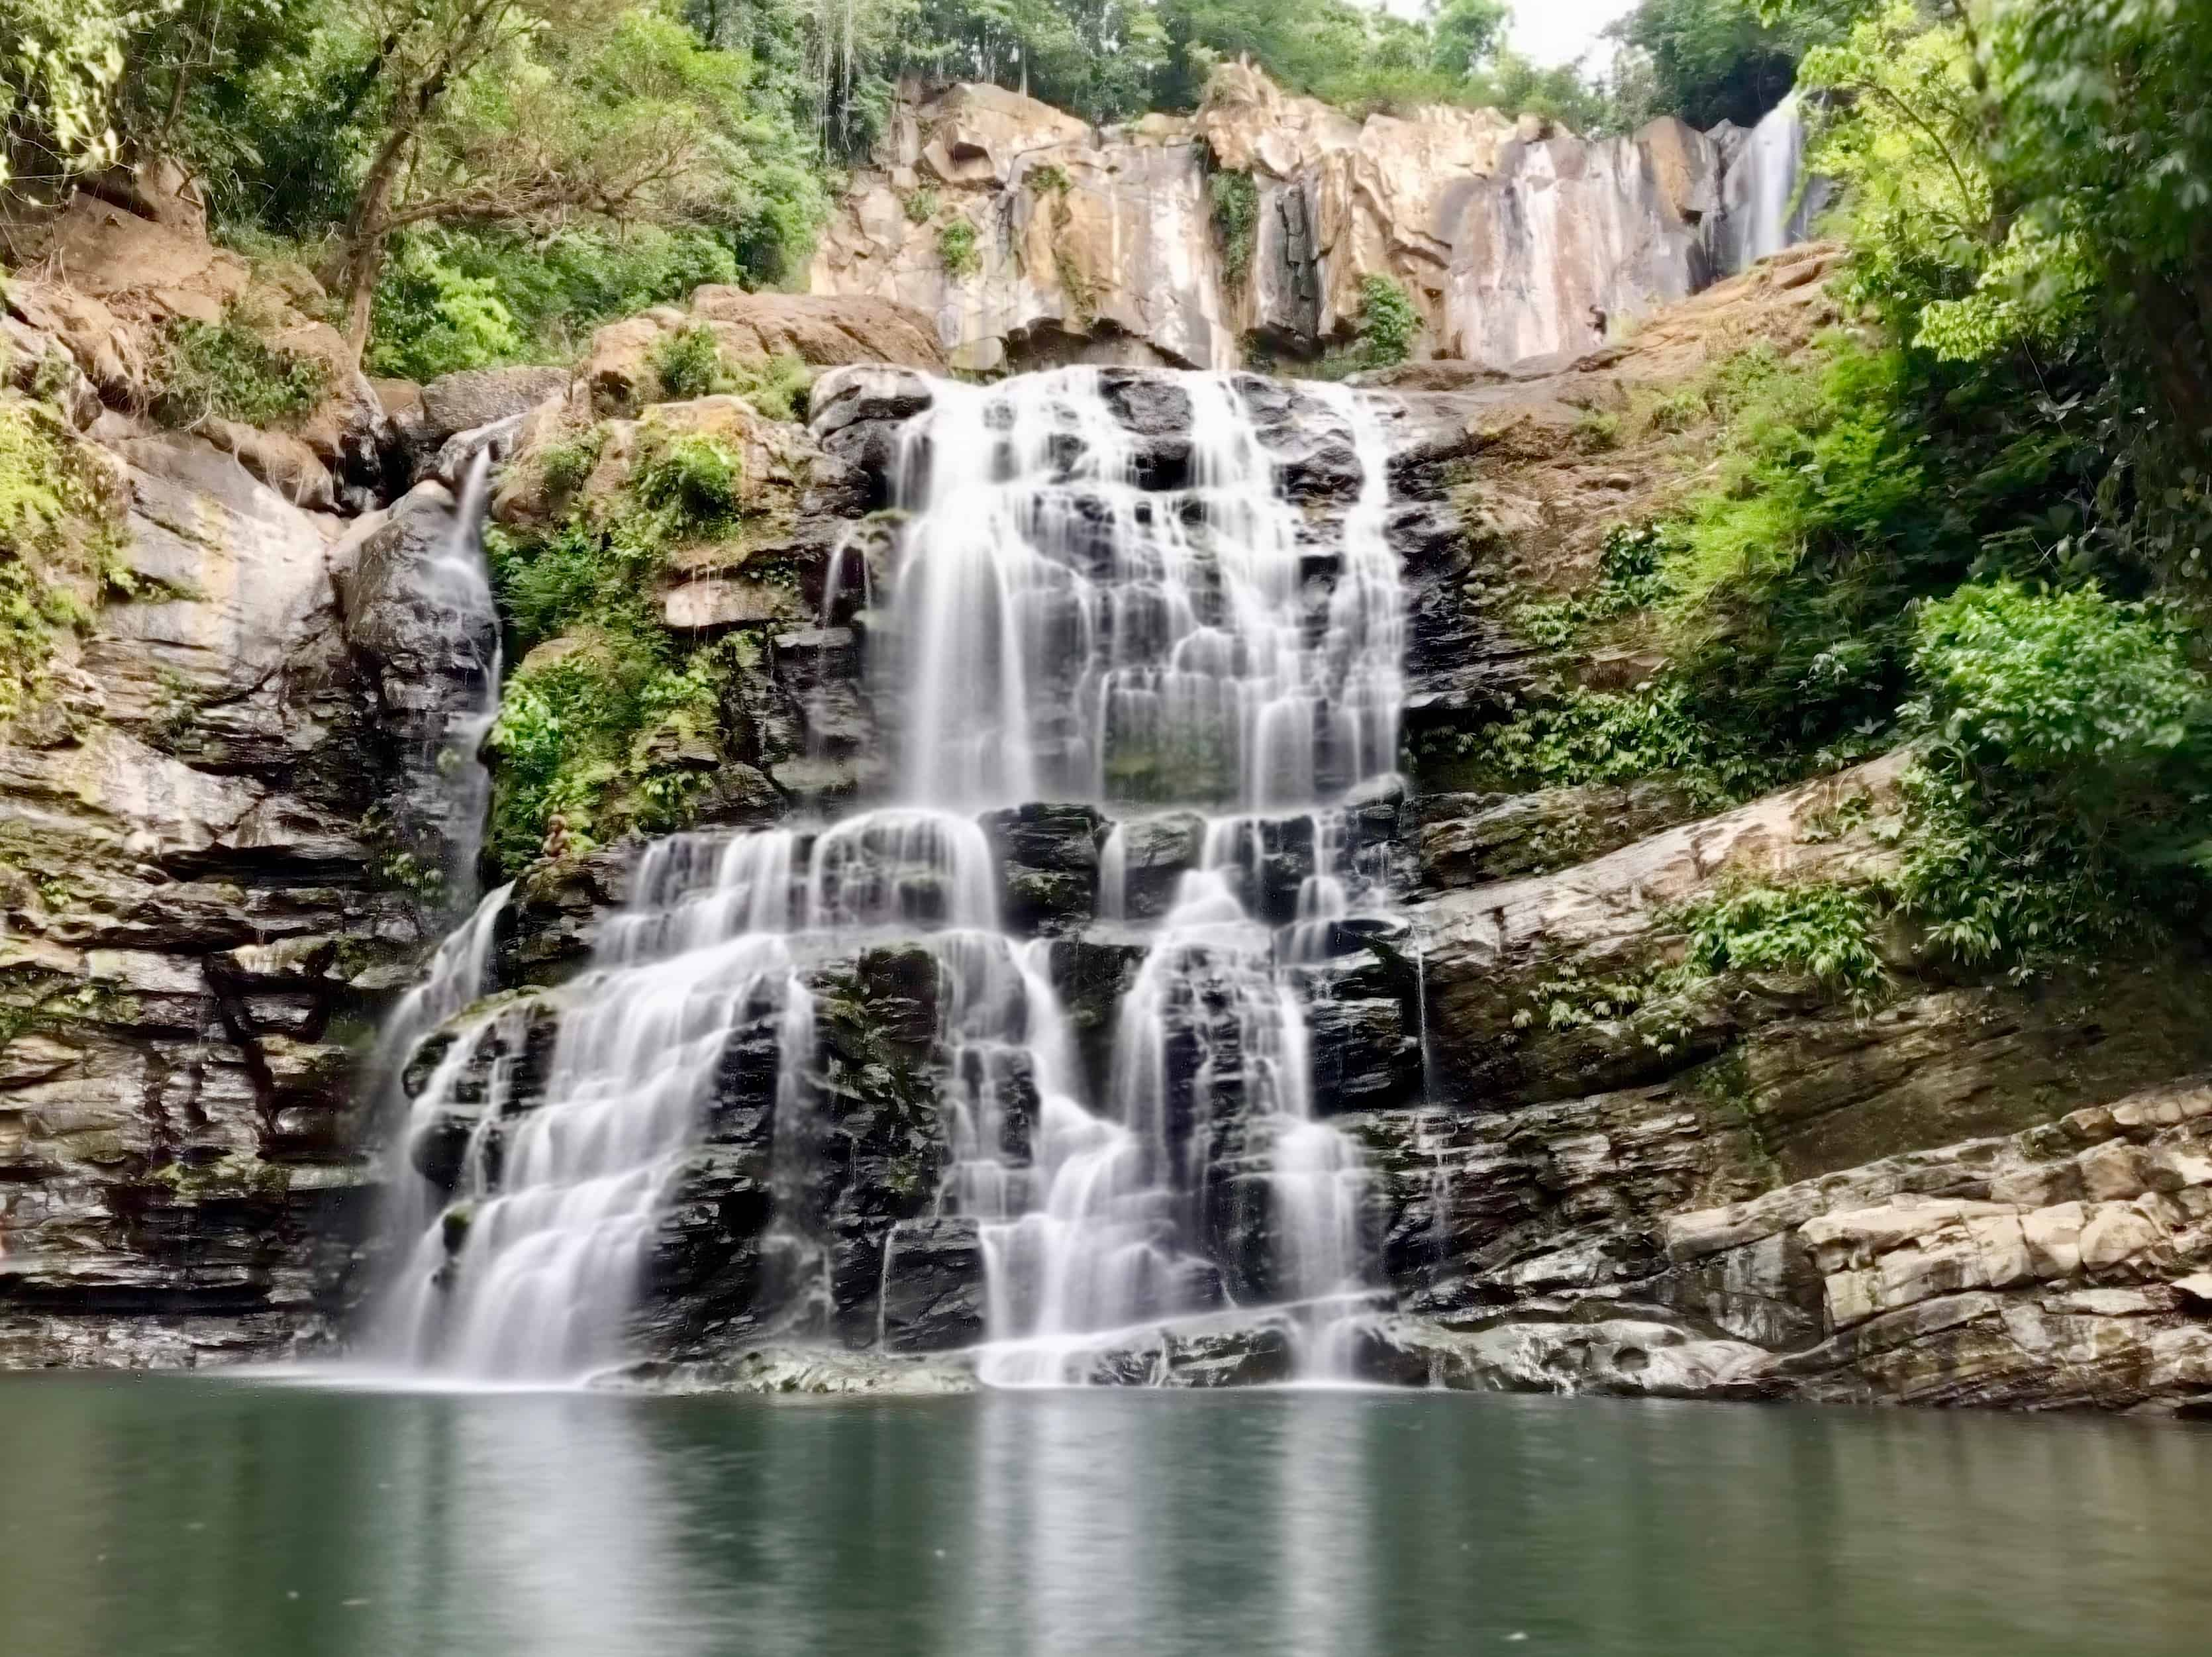 Nauyaca Waterfalls are an inexpensive and memorable outdoors experience.